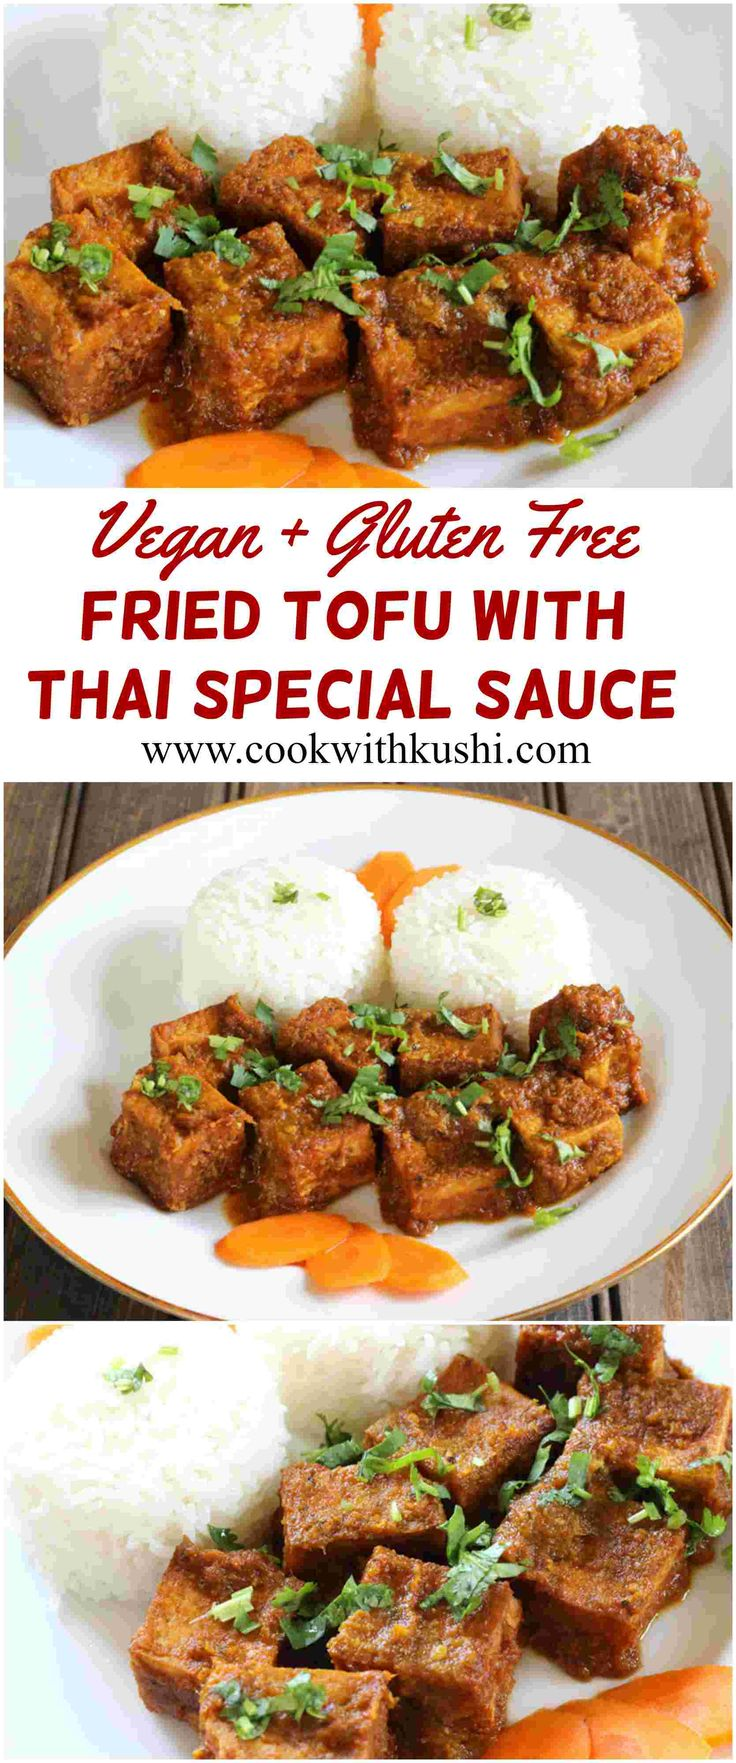 Fried Tofu With Thai Special Sauce is a spicy and delicious, flavorful dish that can be served with steamed rice for lunch or dinner. The recipe is vegan and gluten free. #vegan #glutenfree #lunch #dinner #snack #appetizer #spicy #thai #tofu #paneer #bhgfood #Buzzfeedfood #feedfeed